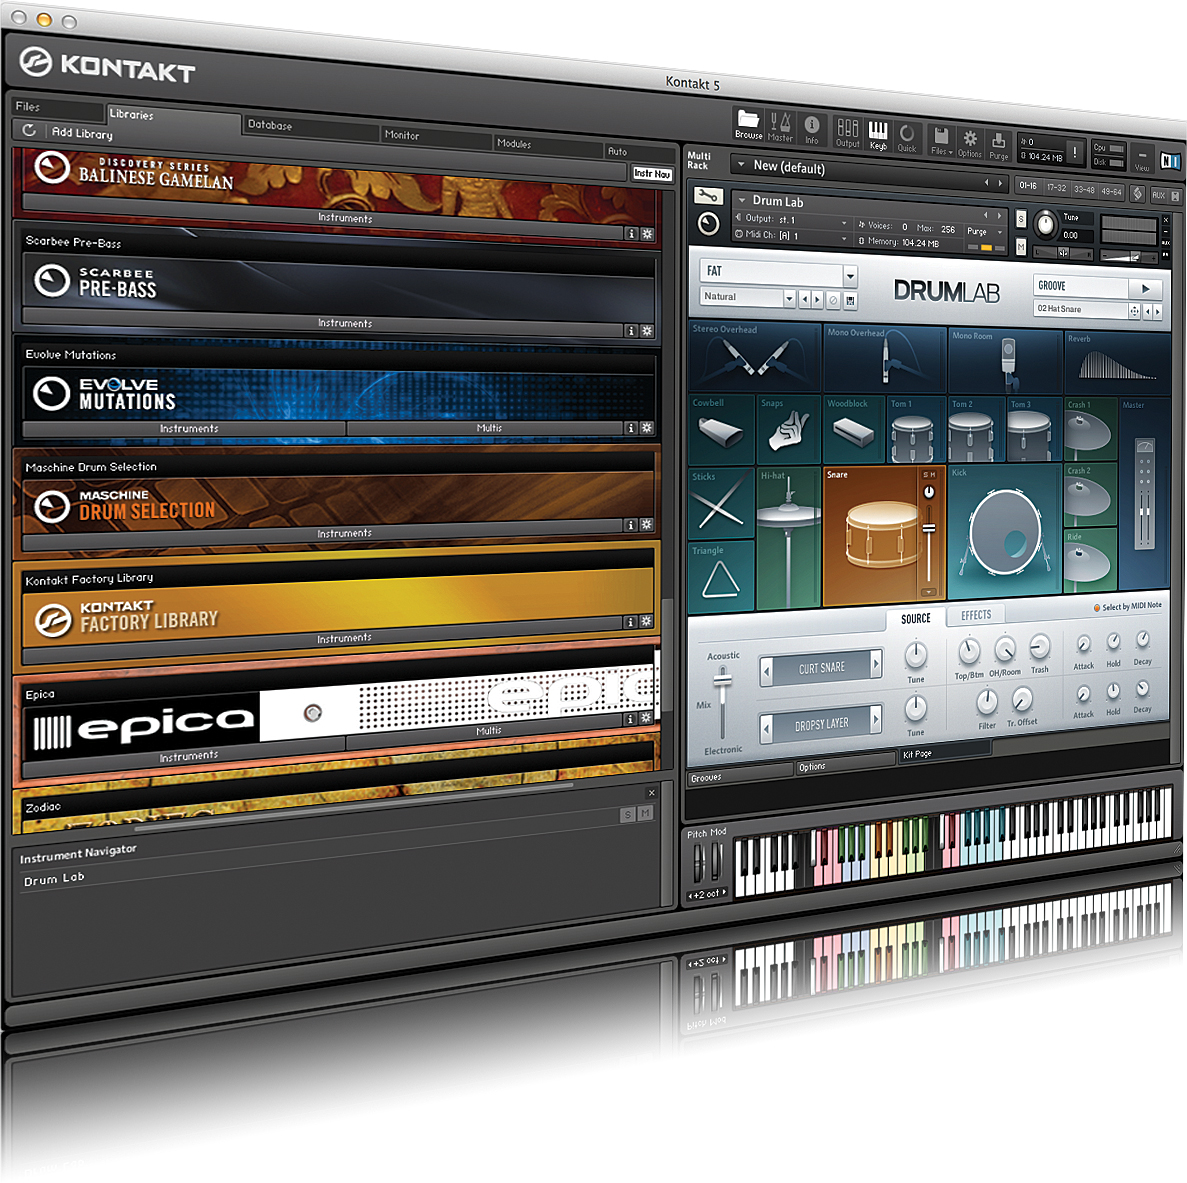 Get Perfect Beats - The Ultimate Guide: Part 1 - MusicTech